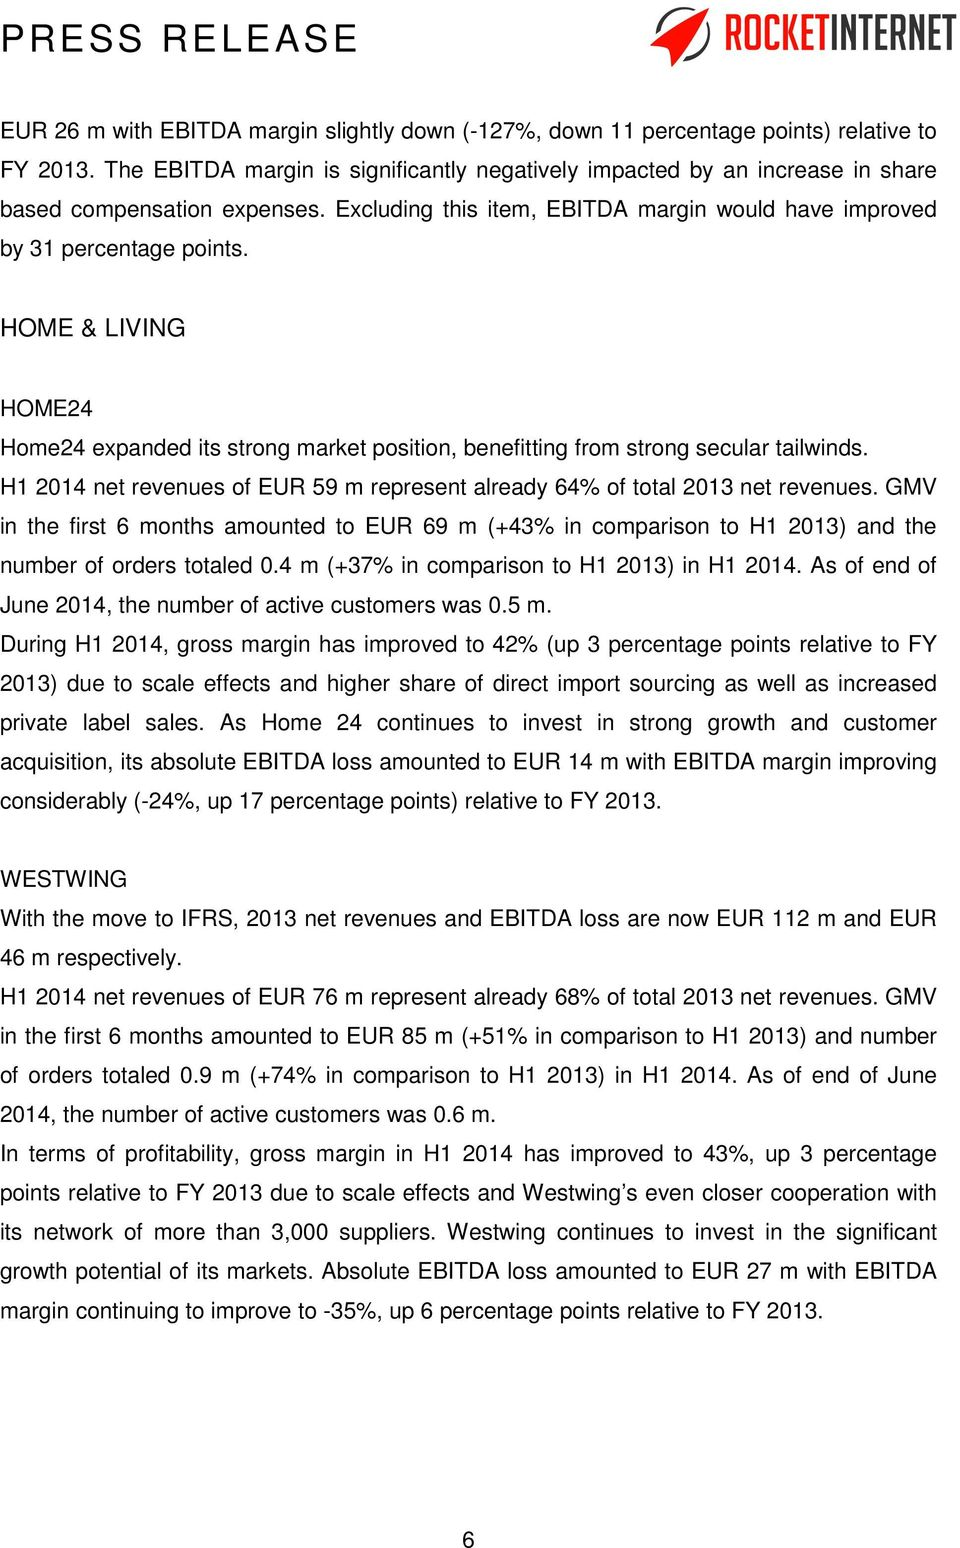 HOME & LIVING HOME24 Home24 expanded its strong market position, benefitting from strong secular tailwinds. H1 2014 net revenues of EUR 59 m represent already 64% of total 2013 net revenues.